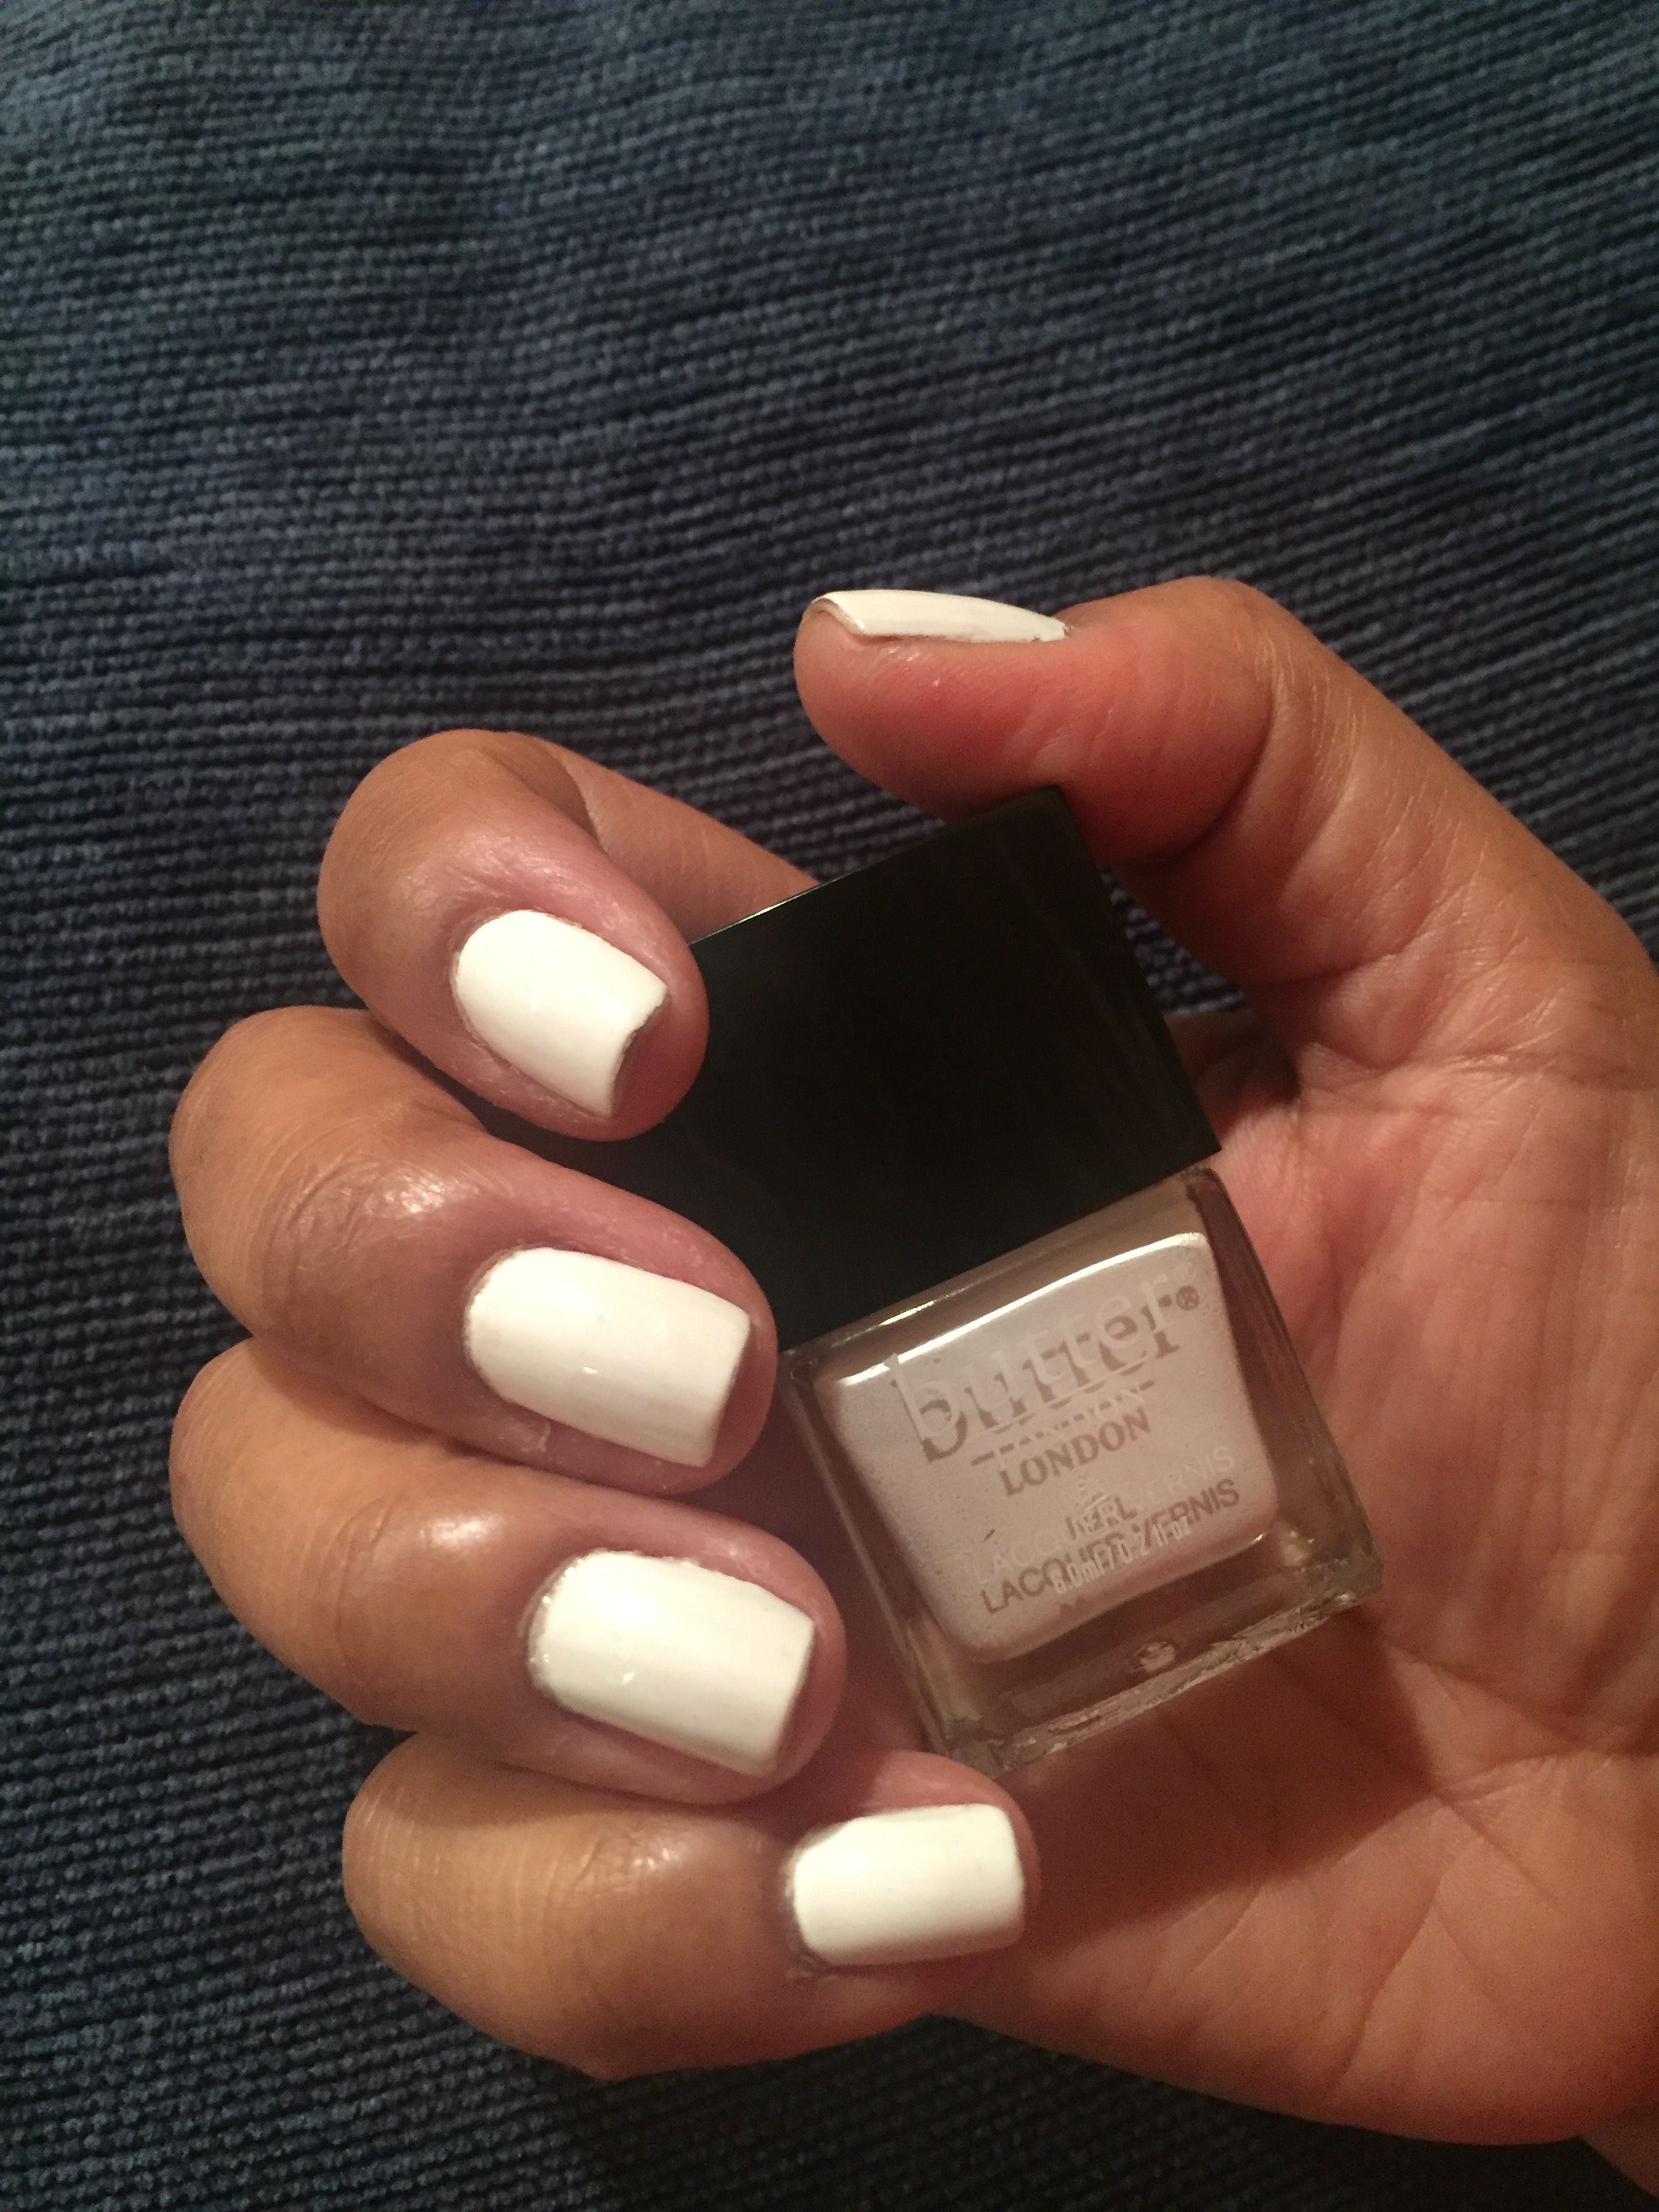 Winter White Nails for New Years Butter London polish in Cotton Buds ...